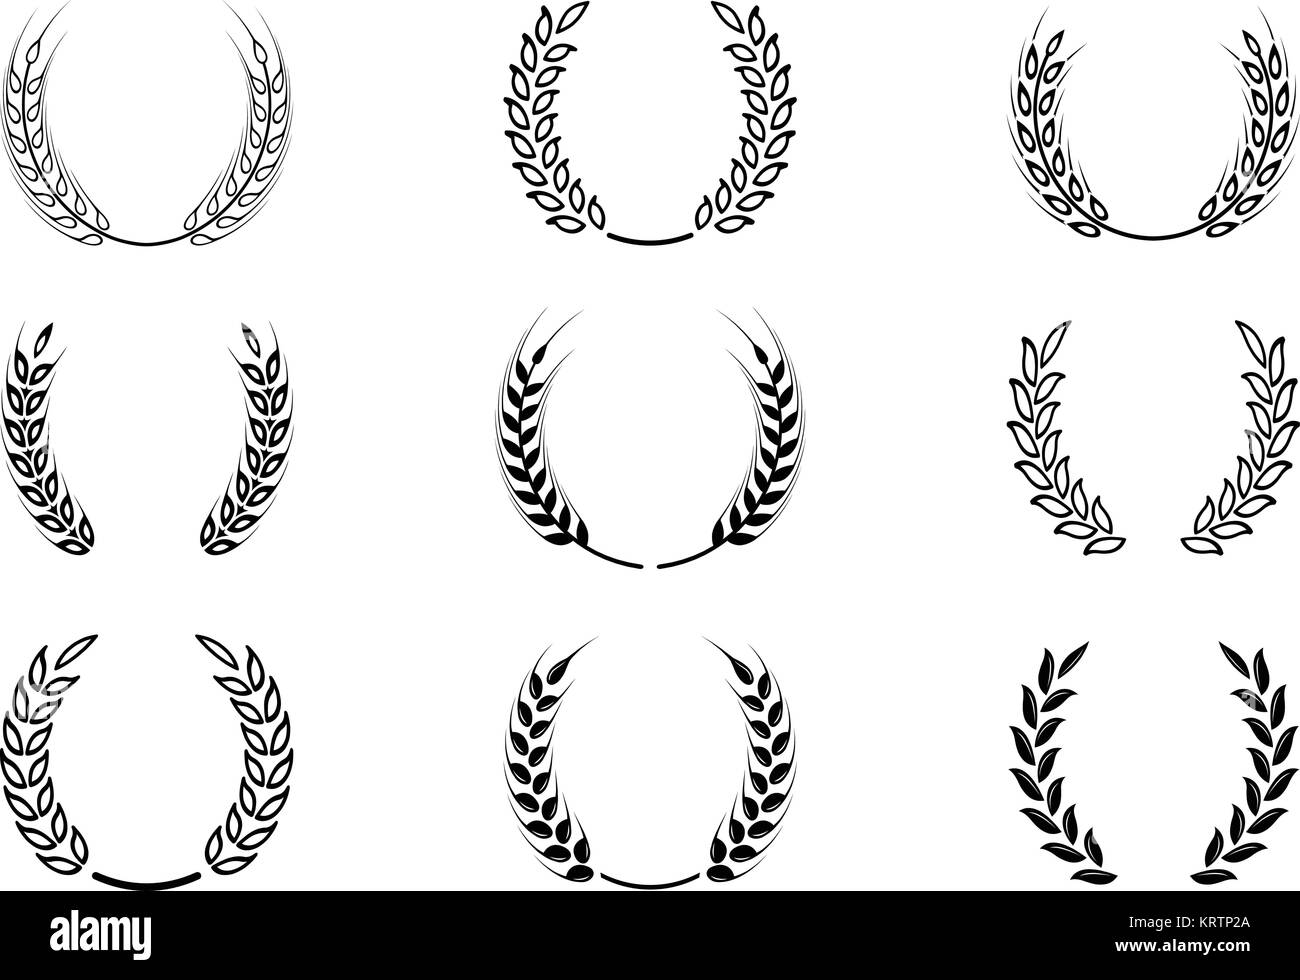 Black laurel wreath a symbol of the winner wheat ears or rice black laurel wreath a symbol of the winner wheat ears or rice icons set agricultural symbols isolated on white background design elements for bre biocorpaavc Choice Image